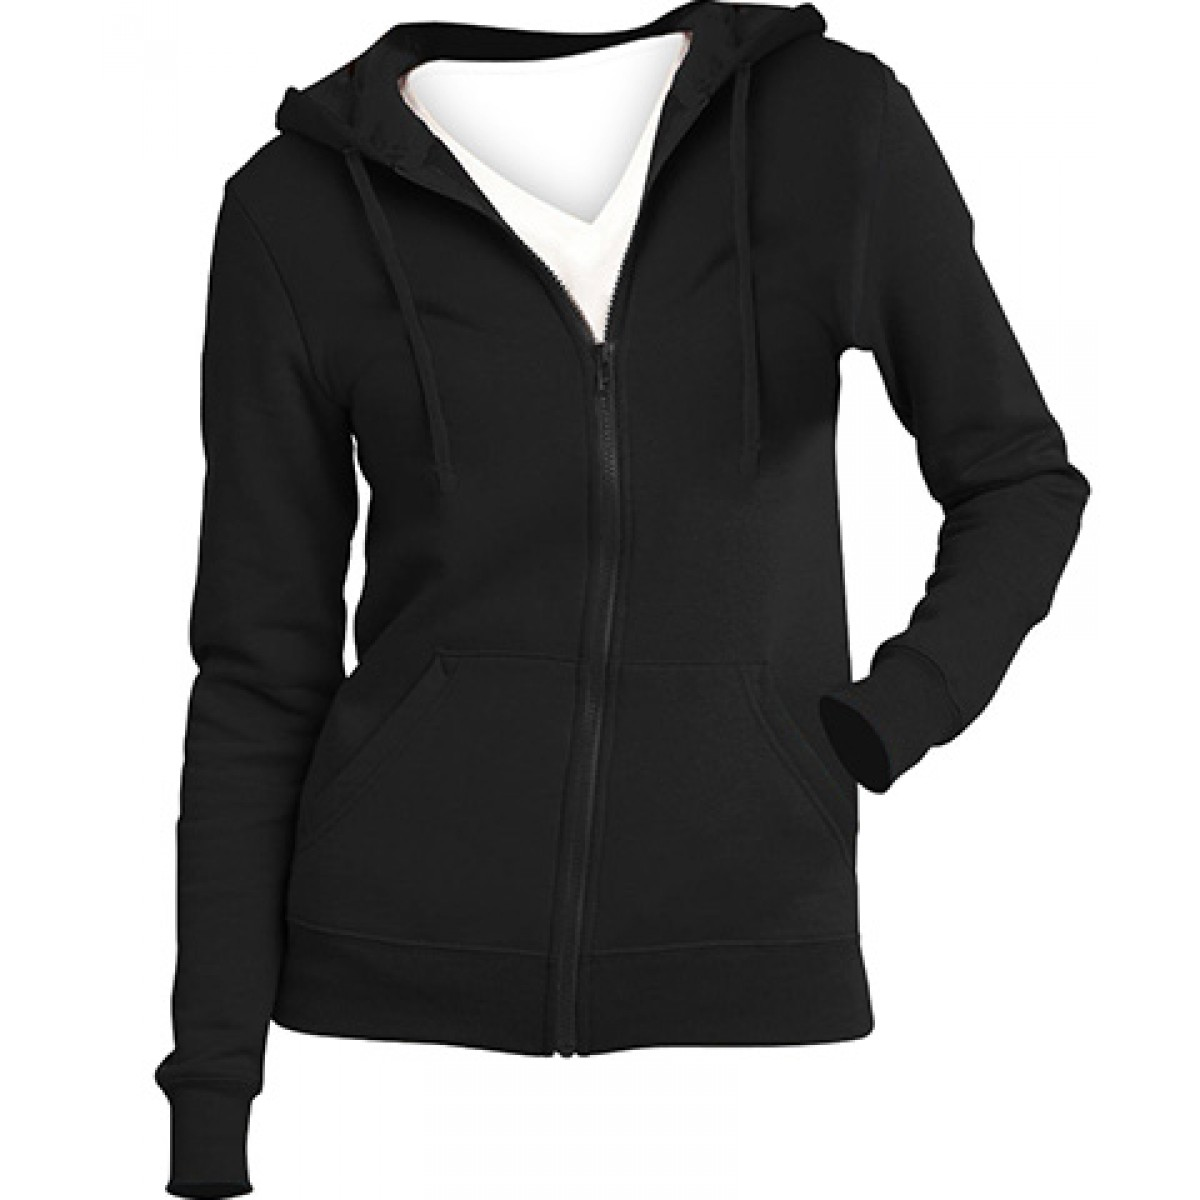 Juniors Full-Zip Hoodie-Black-L